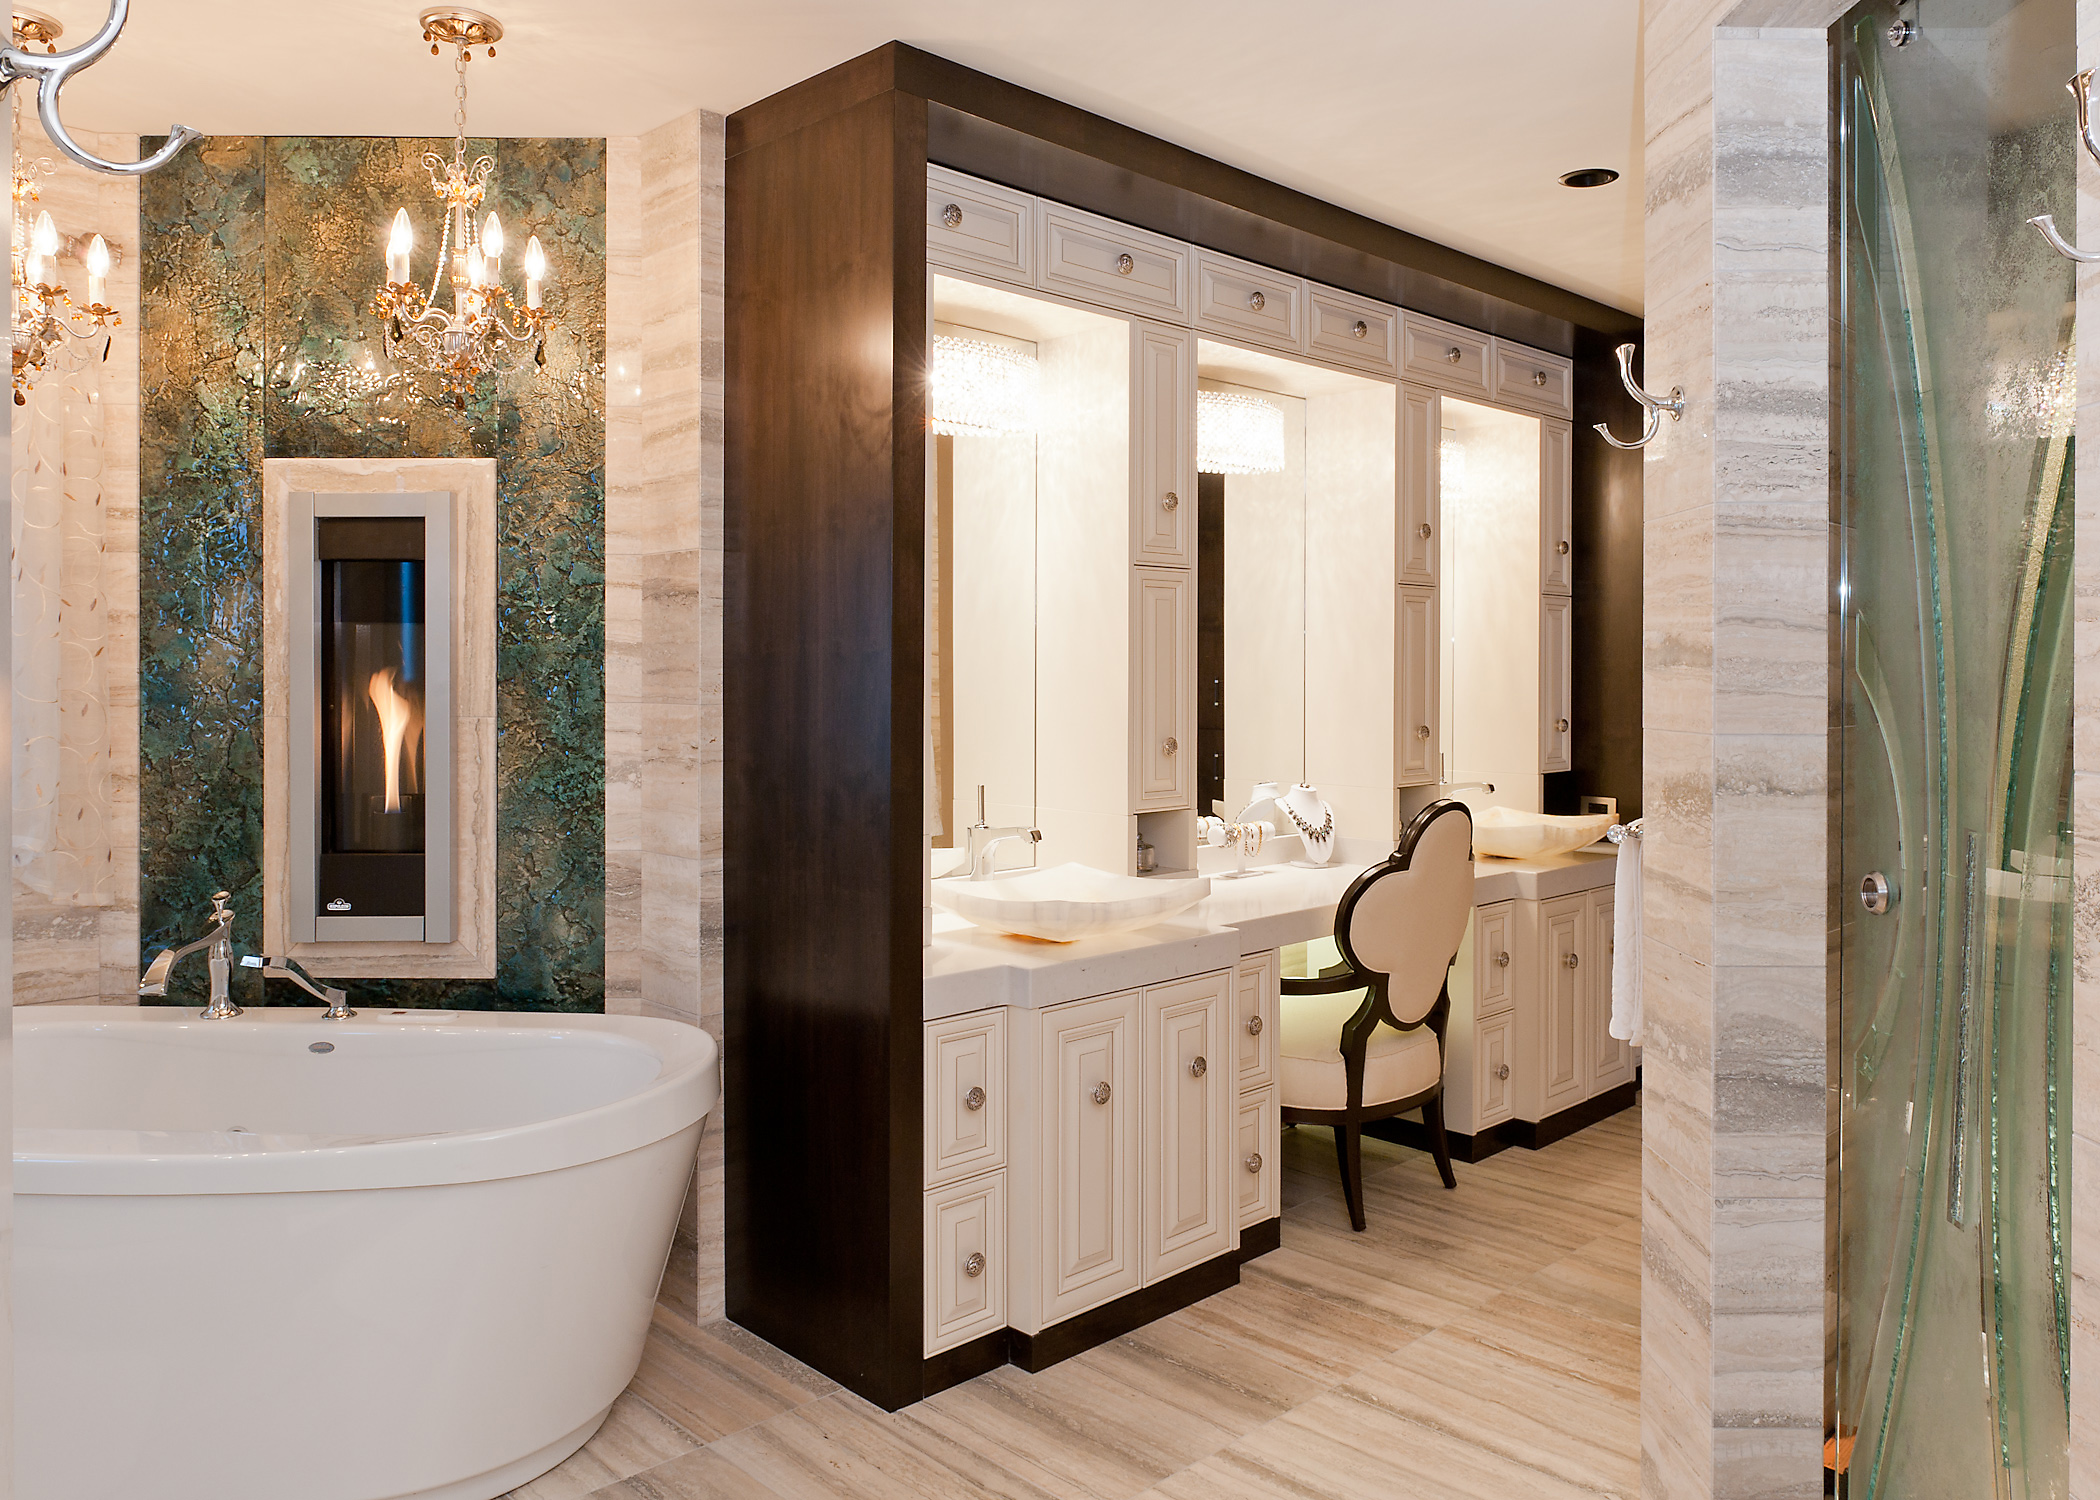 Bathroom Cabinets Kelowna click here to view our bathroom designs. kelowna and area are served